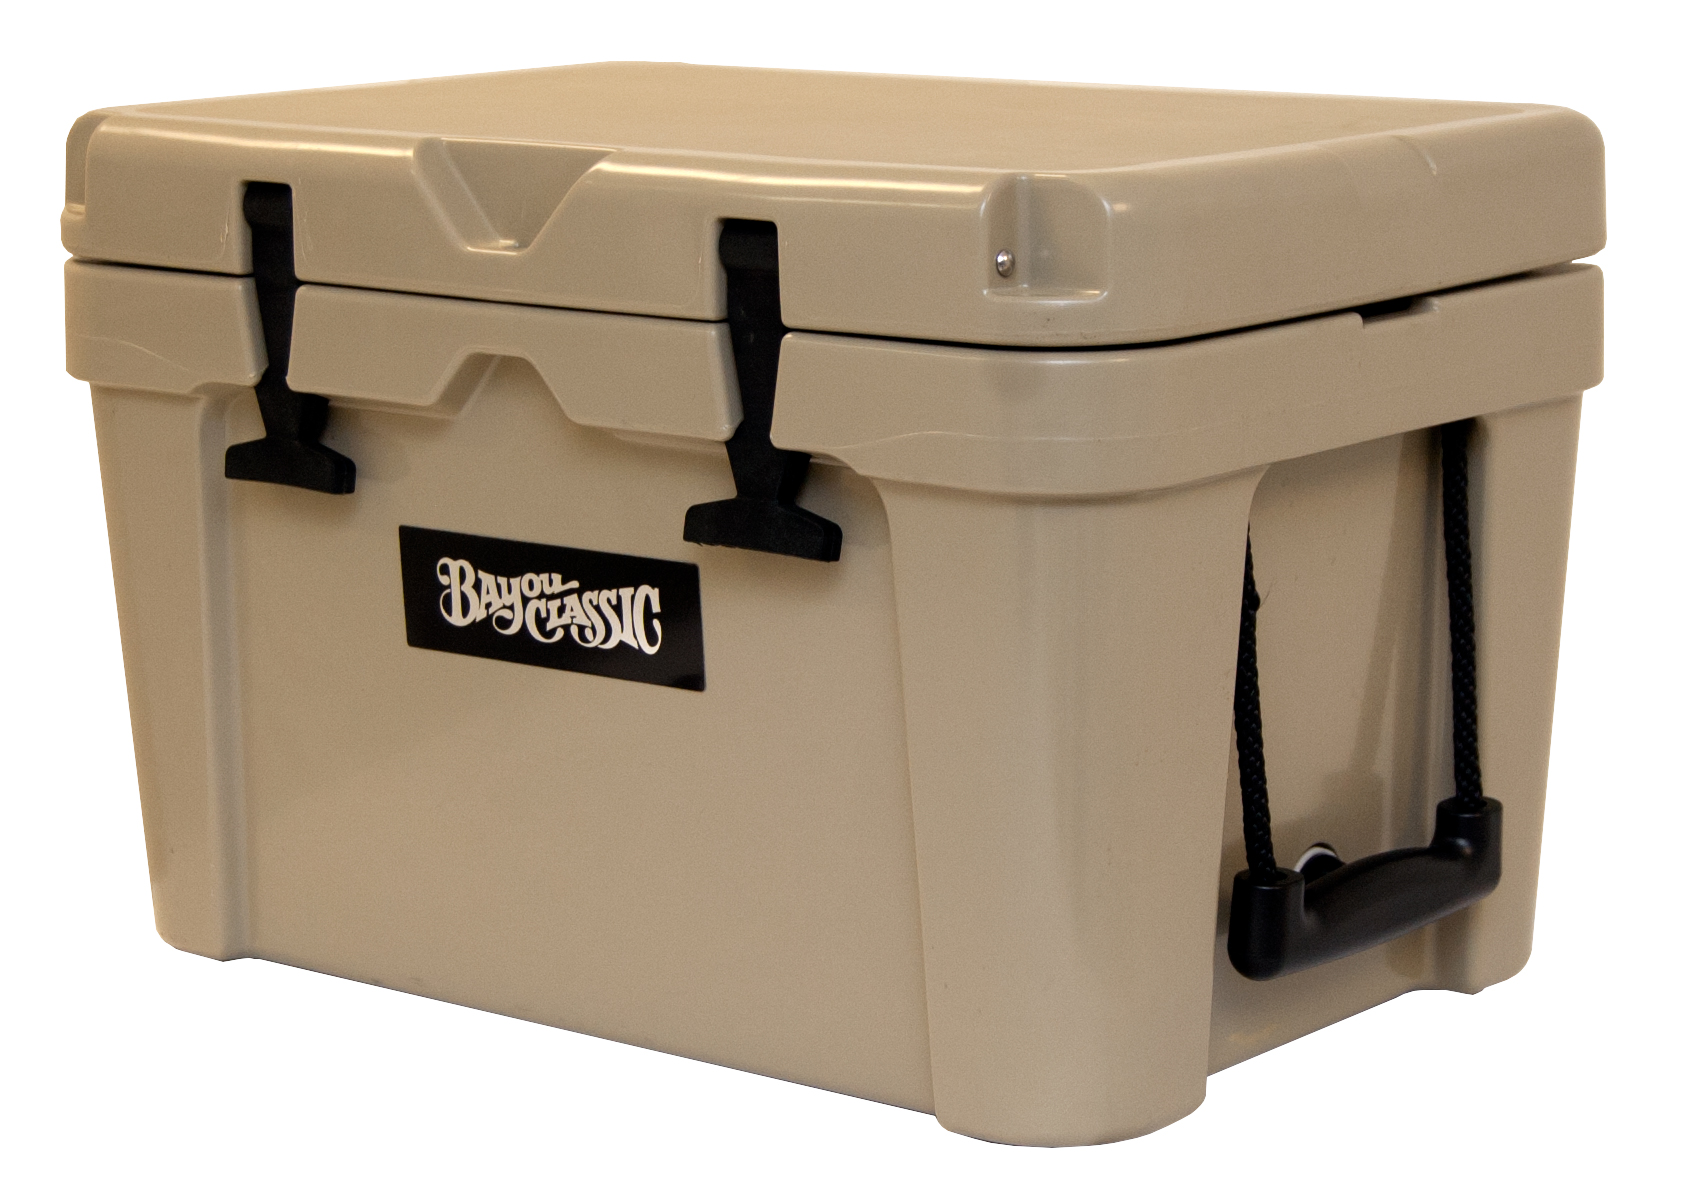 Bayou Classic BC25T 25 Litre Classic Roto Mold Construction Cooler